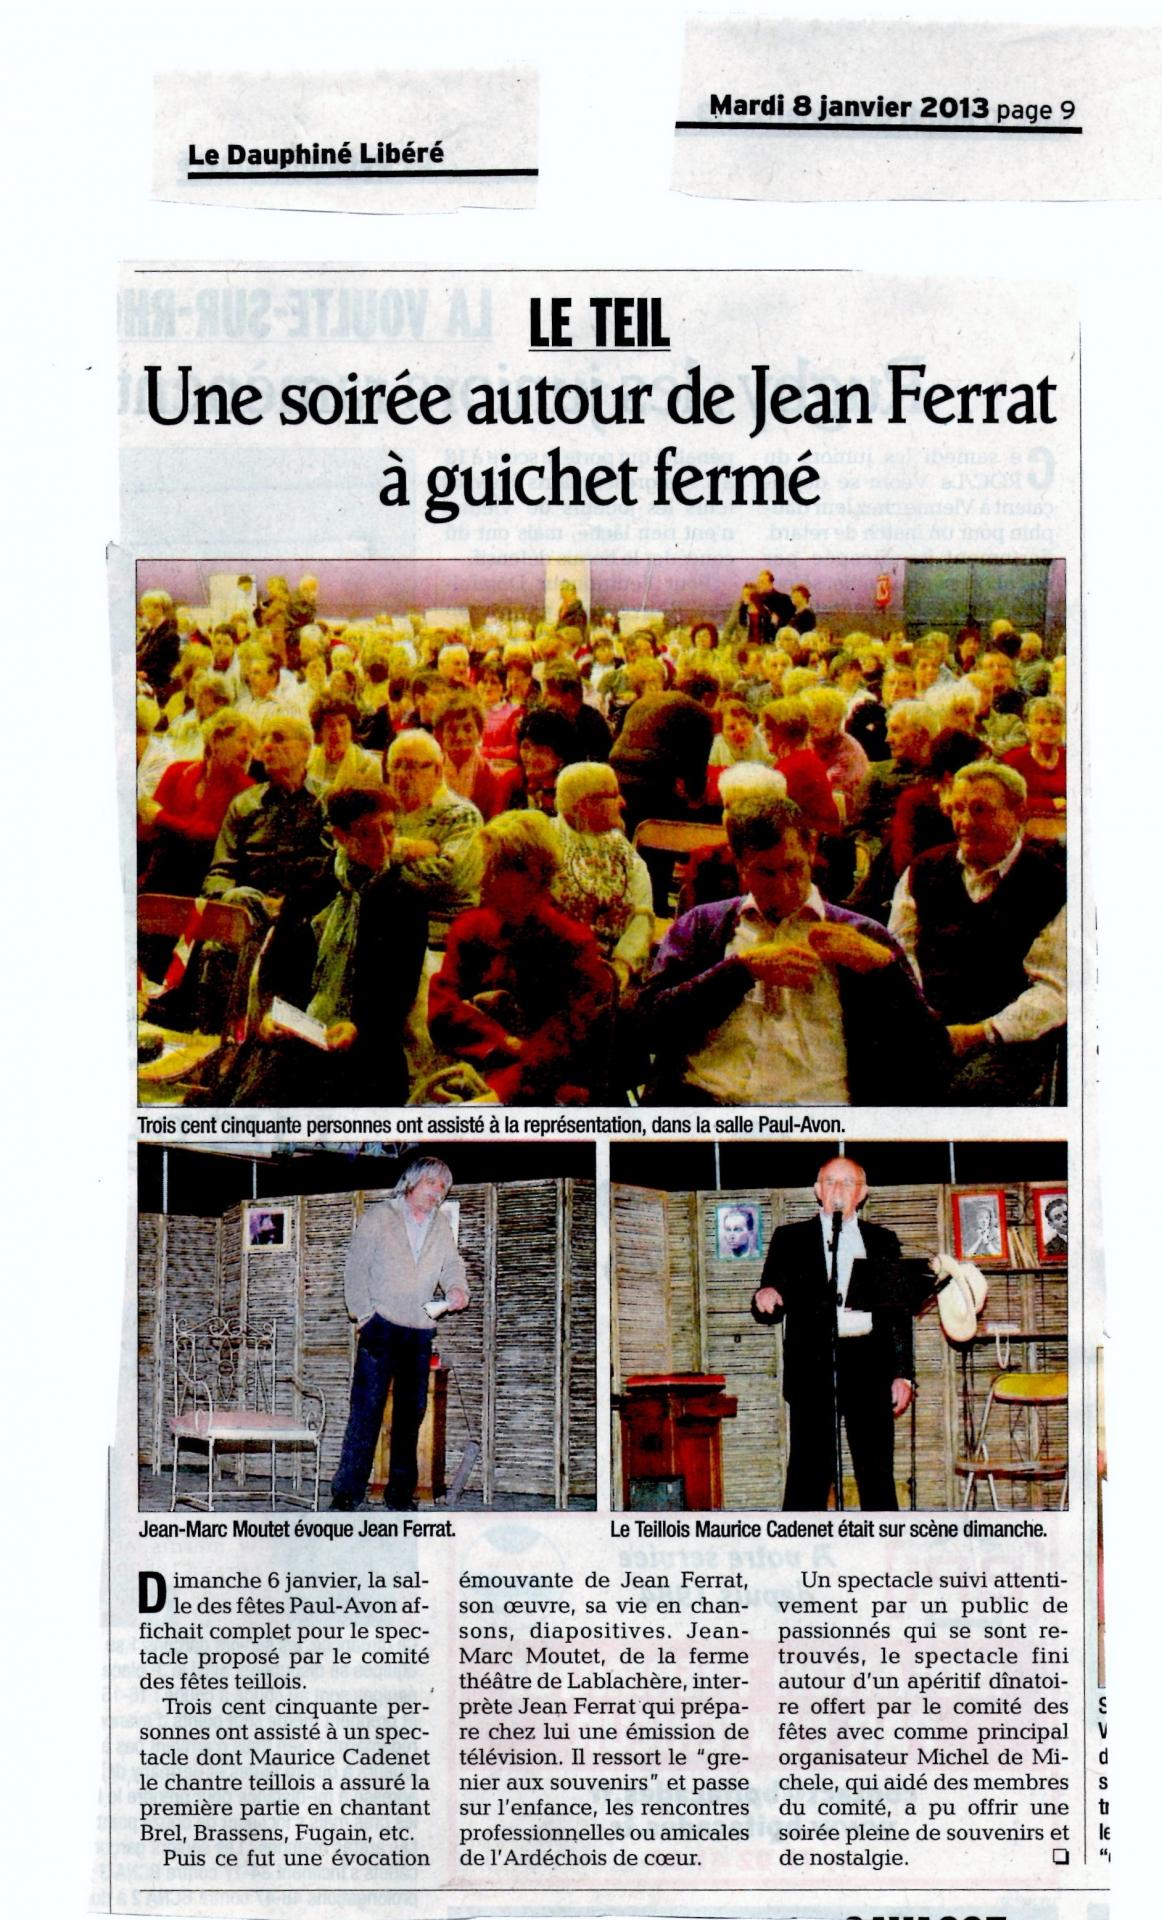 Article dauphine 8 1 13